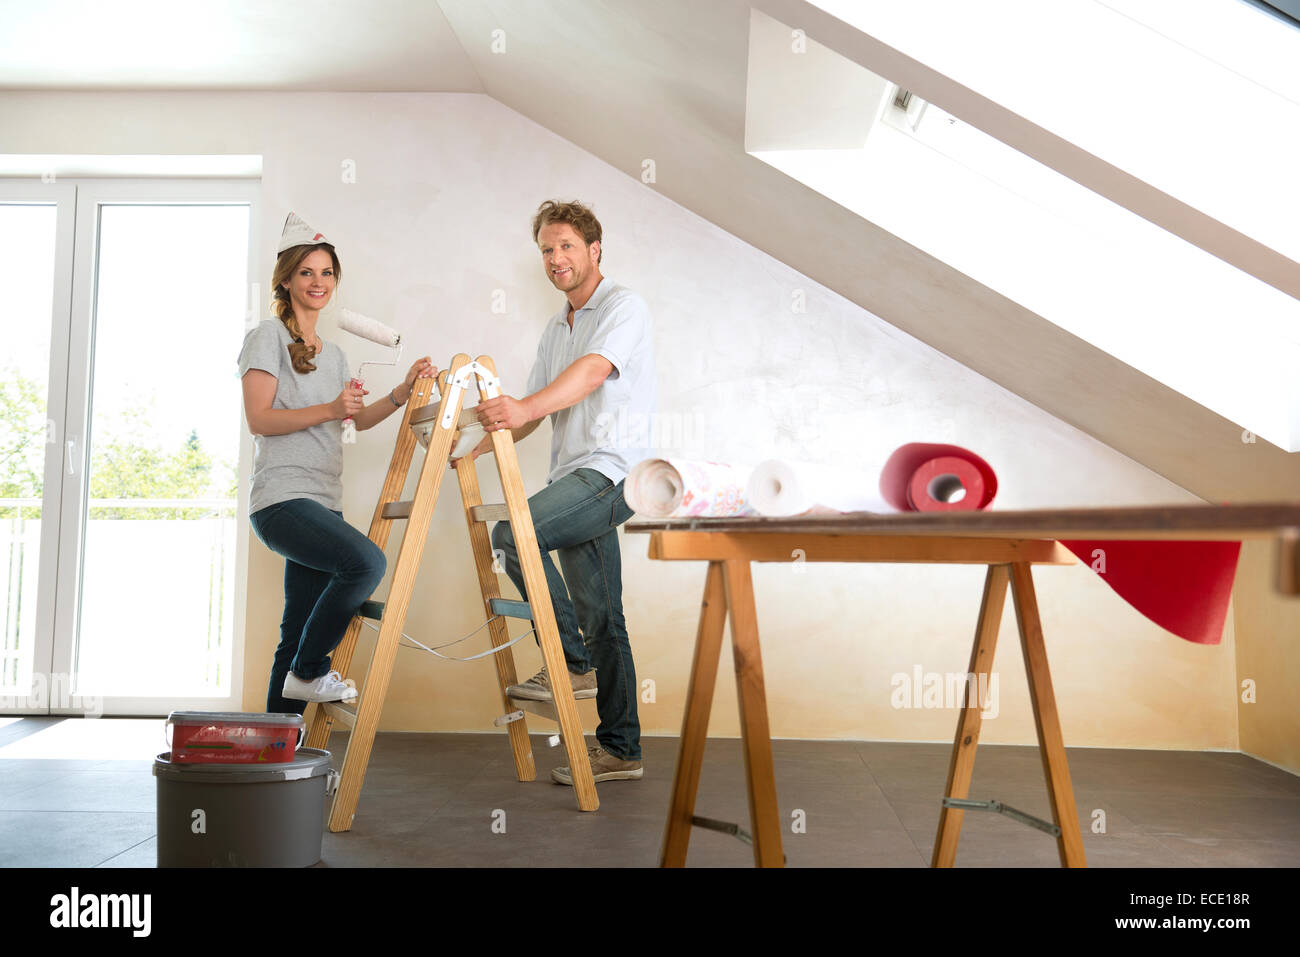 Woman Home Decorating man woman couple renovating home decorating stock photo, royalty